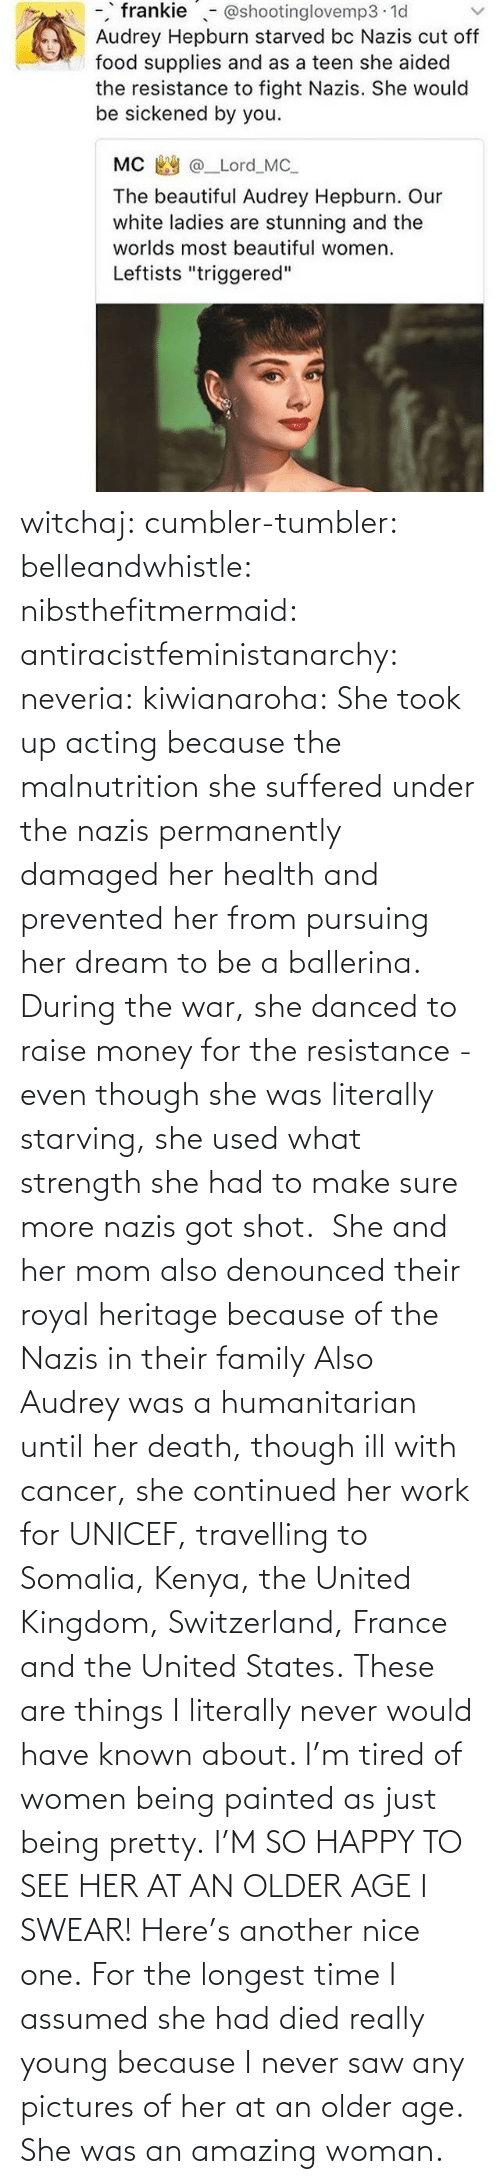 Saw: witchaj: cumbler-tumbler:  belleandwhistle:  nibsthefitmermaid:  antiracistfeministanarchy:  neveria:  kiwianaroha: She took up acting because the malnutrition she suffered under the nazis permanently damaged her health and prevented her from pursuing her dream to be a ballerina. During the war, she danced to raise money for the resistance - even though she was literally starving, she used what strength she had to make sure more nazis got shot.  She and her mom also denounced their royal heritage because of the Nazis in their family  Also Audrey was a humanitarian until her death, though ill with cancer, she continued her work for UNICEF, travelling to Somalia, Kenya, the United Kingdom, Switzerland, France and the United States.  These are things I literally never would have known about. I'm tired of women being painted as just being pretty.  I'M SO HAPPY TO SEE HER AT AN OLDER AGE I SWEAR!  Here's another nice one.   For the longest time I assumed she had died really young because I never saw any pictures of her at an older age.  She was an amazing woman.